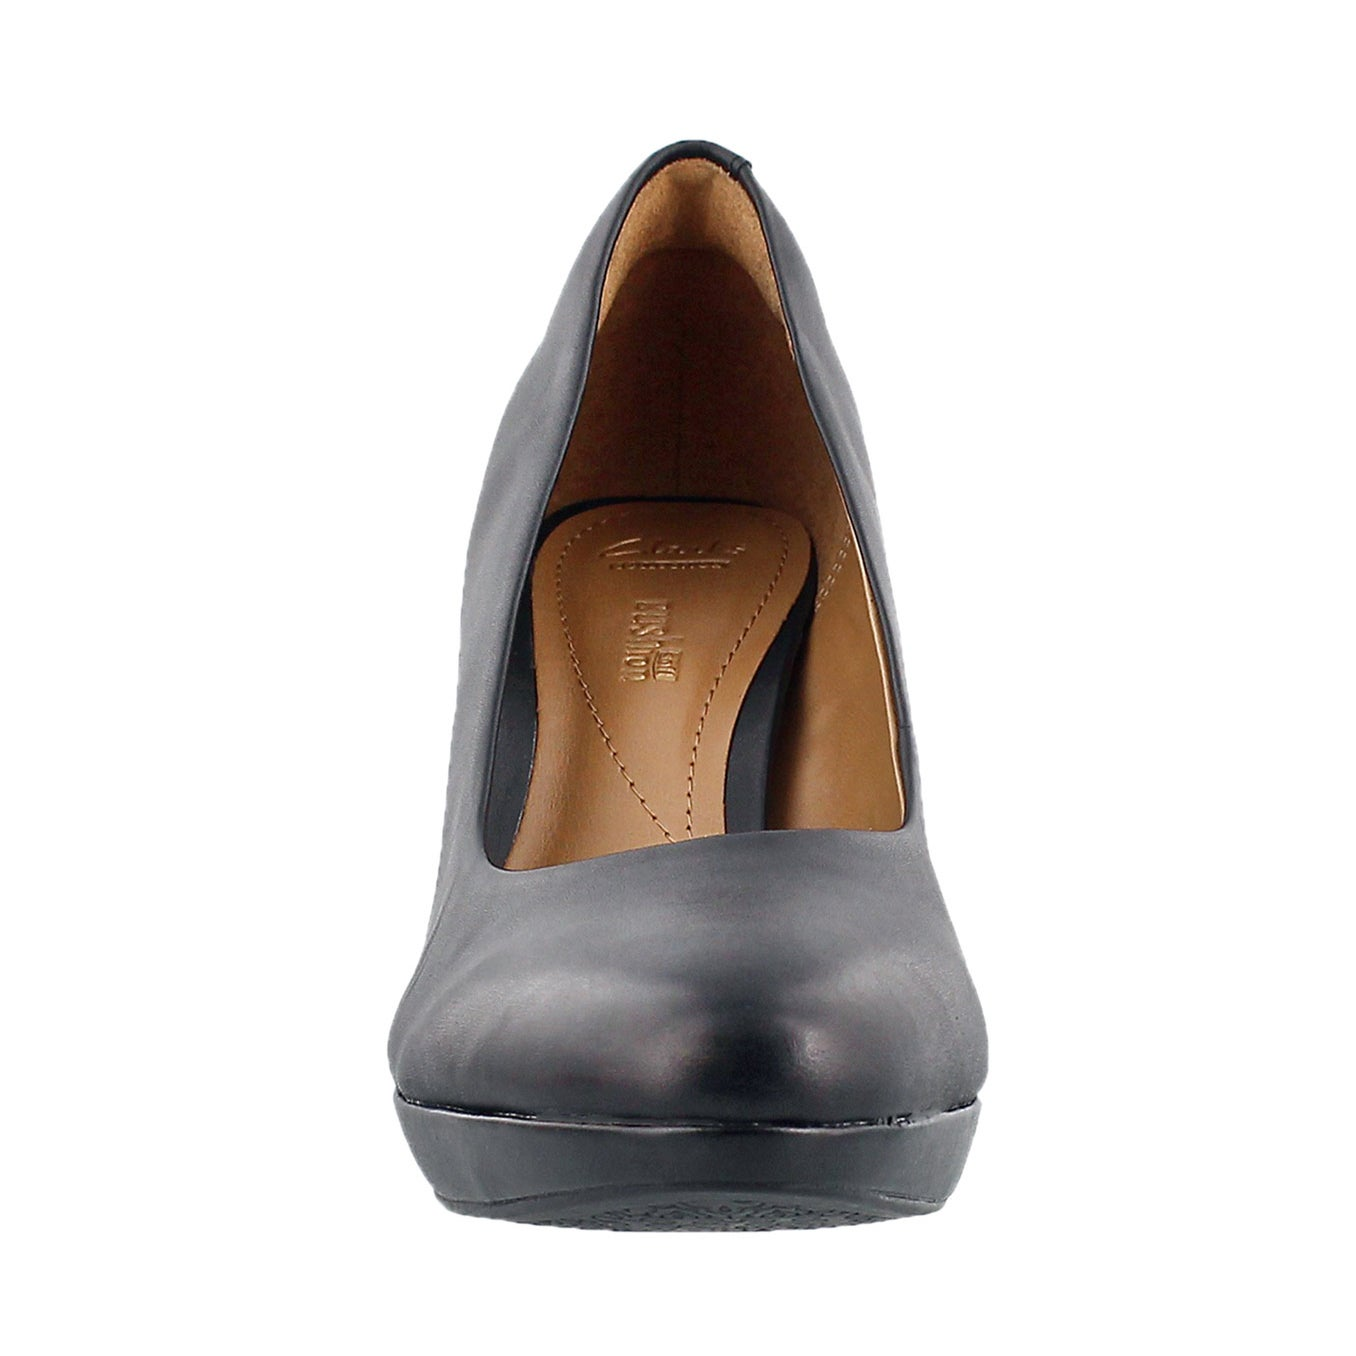 Lds Brier Dolly black leather dress heel